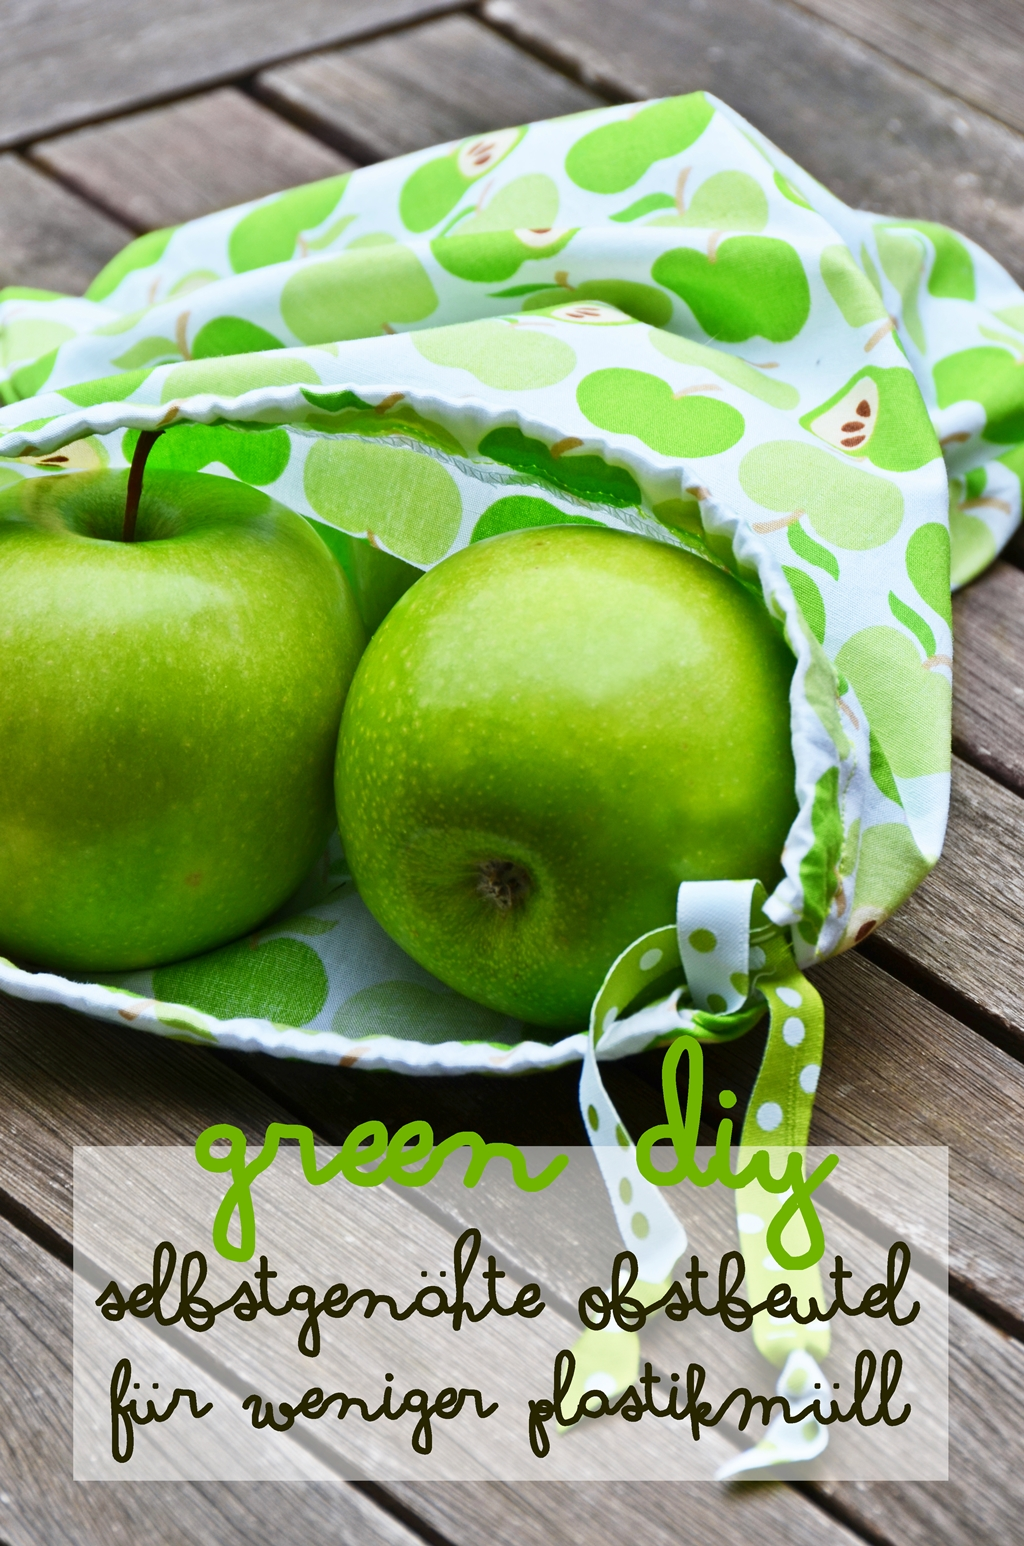 Green DIY | umweltfreundliche & nachhaltige Obstbeutel aus Stoff statt Plastik selbernähen | sewing eco friendly & sustainable drawstring bags for fruit and vegetable grocery shopping | luziapimpinella.com